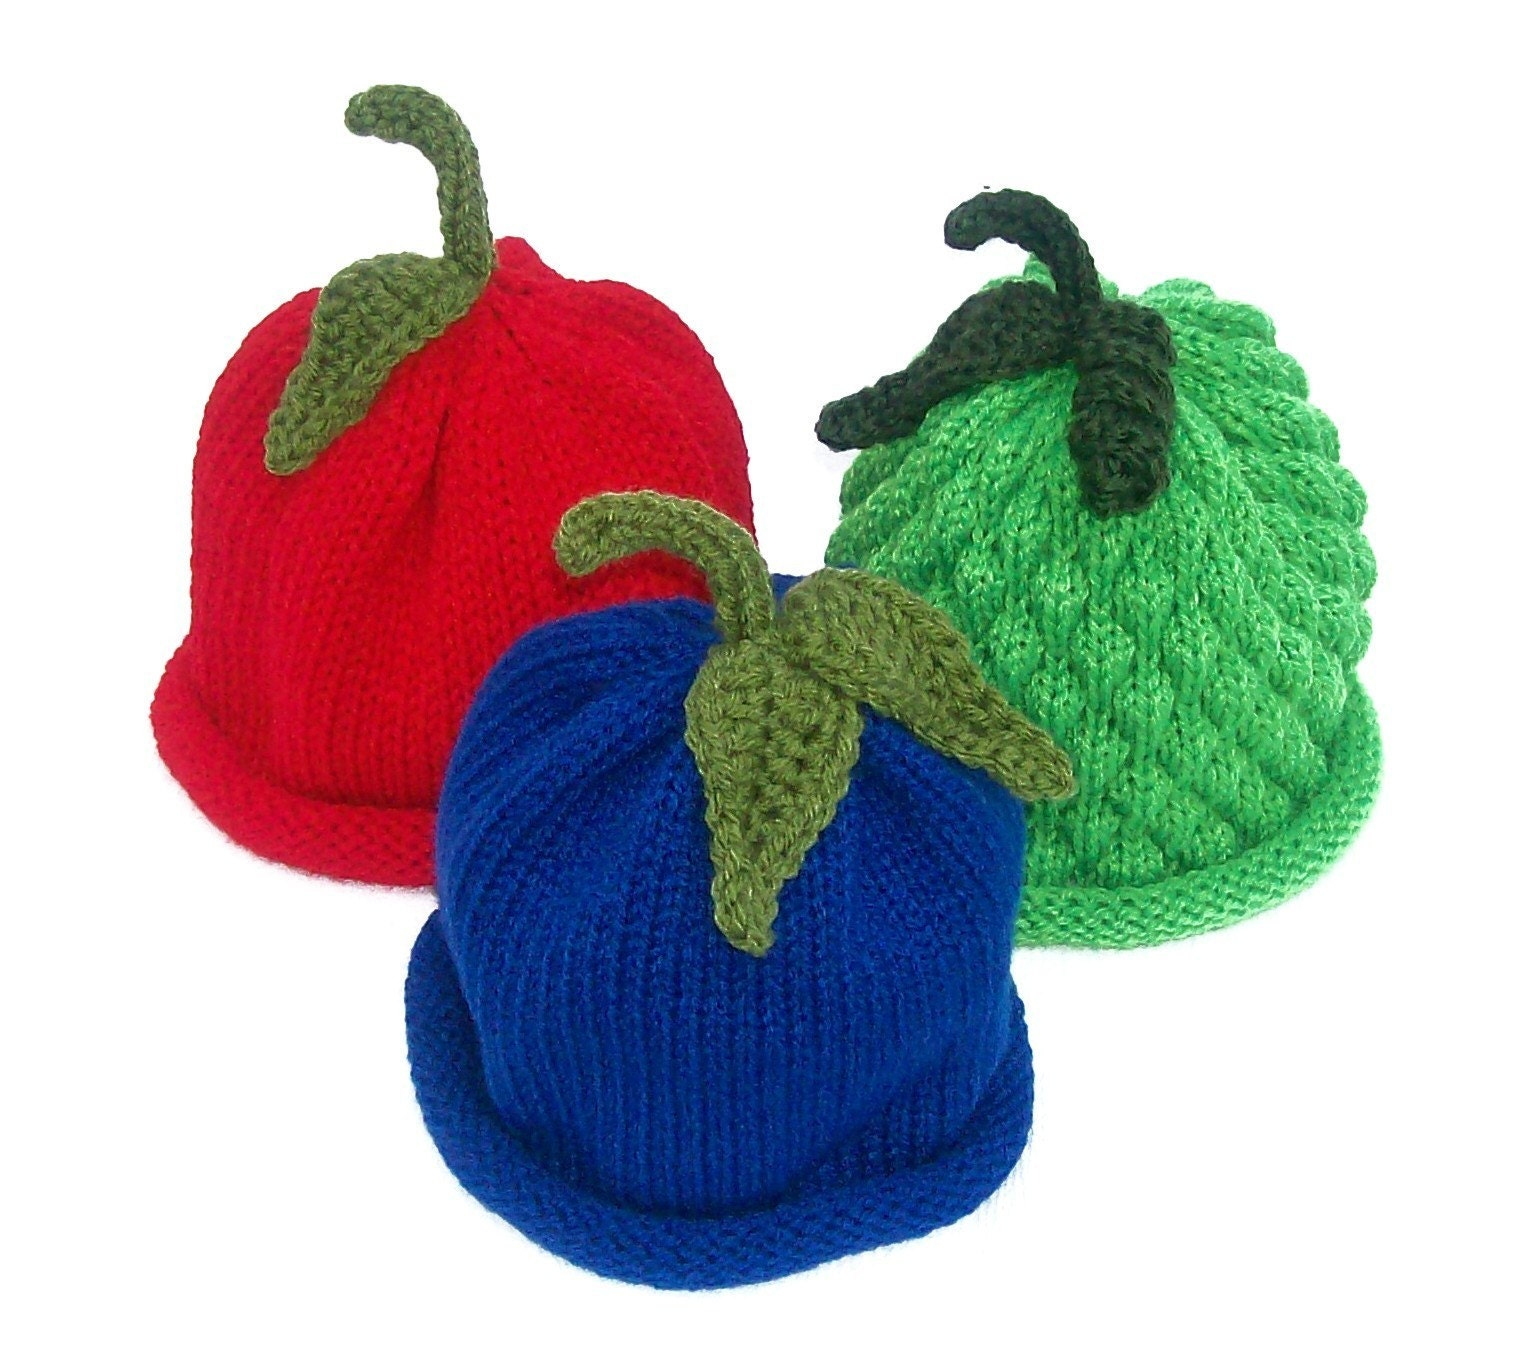 Fruit Hats for Girls and Boys Perfect for Custom Photograpy Portraits - 3PK Infant Sizes